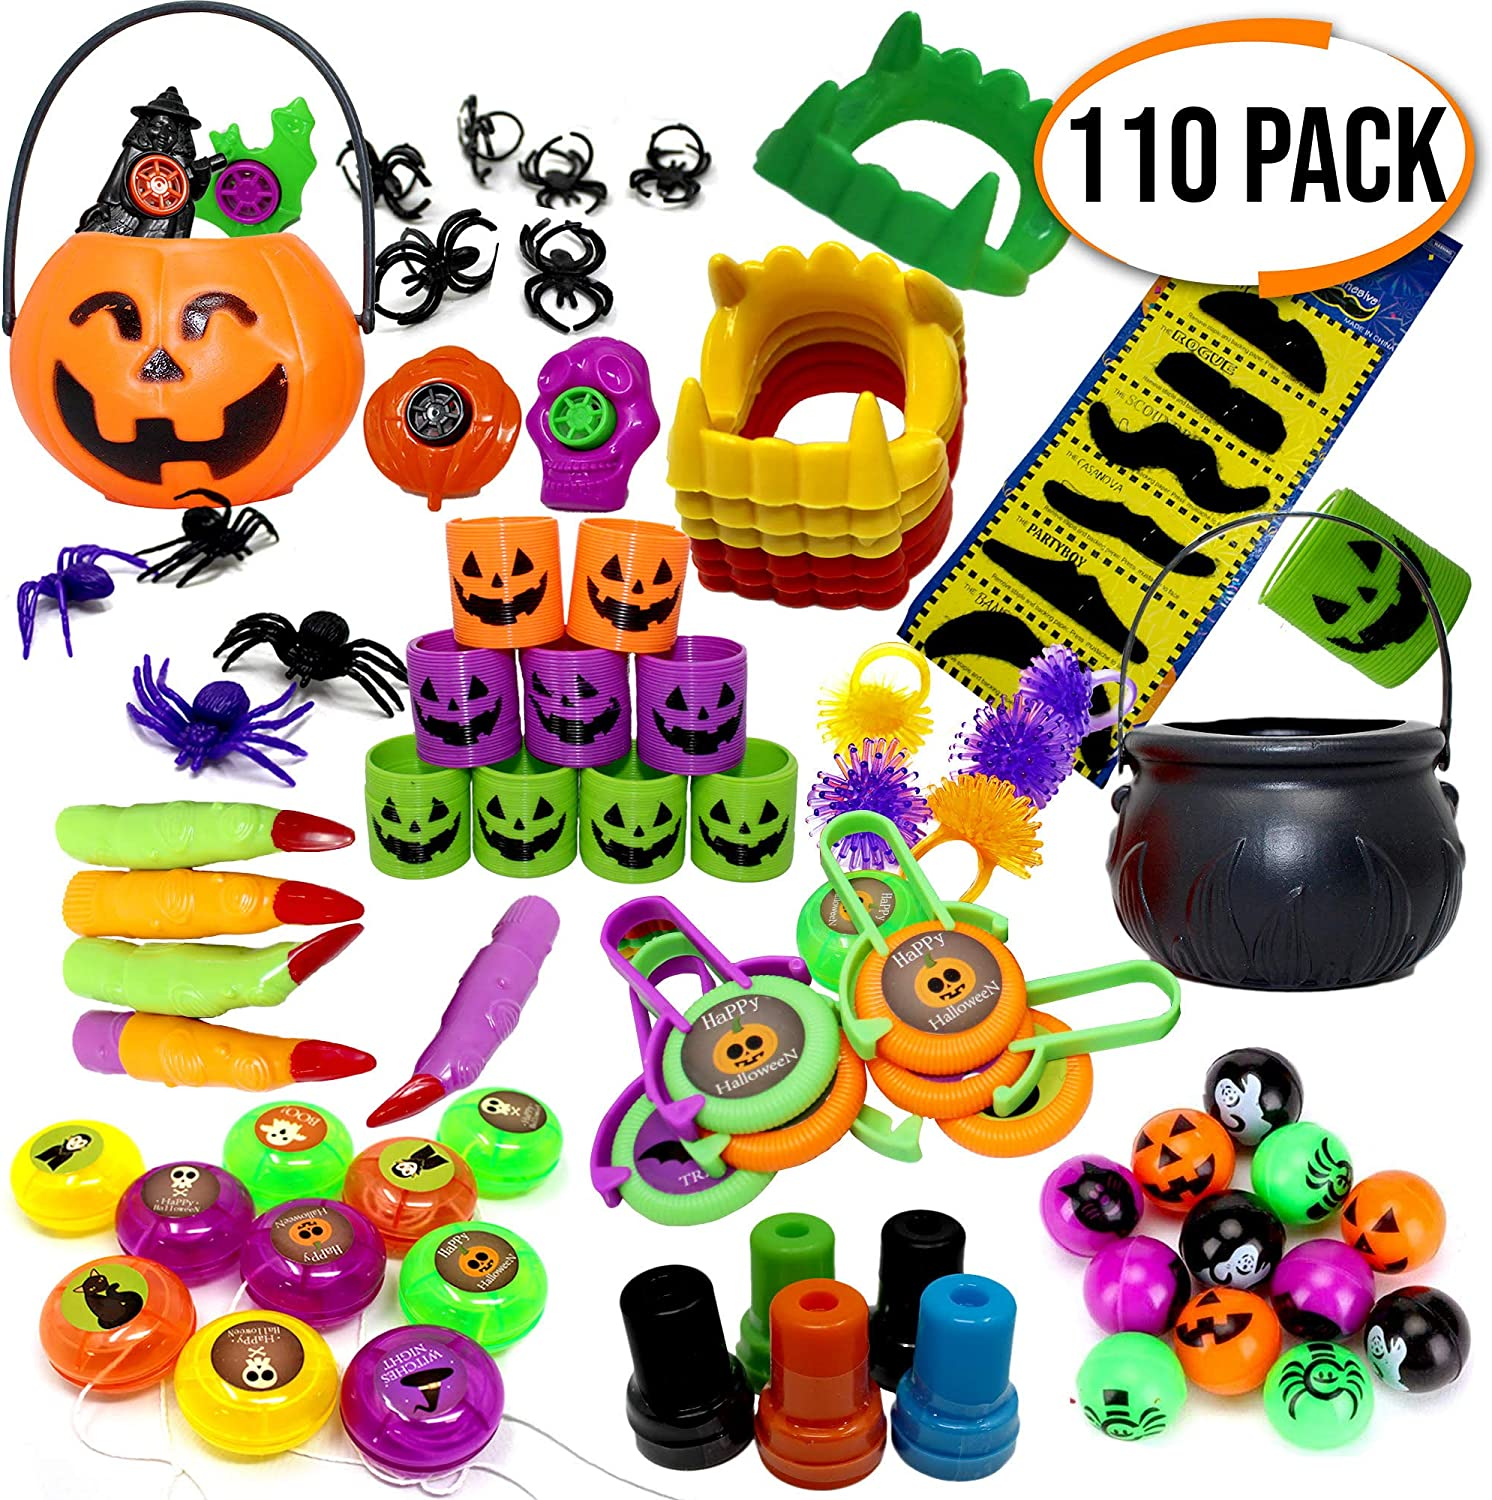 The Twiddlers Set of 110 Halloween Themed Party Toys  Perfect for Party Favours  Pinatas  Birthday & Halloween Parties  Christmas Etc